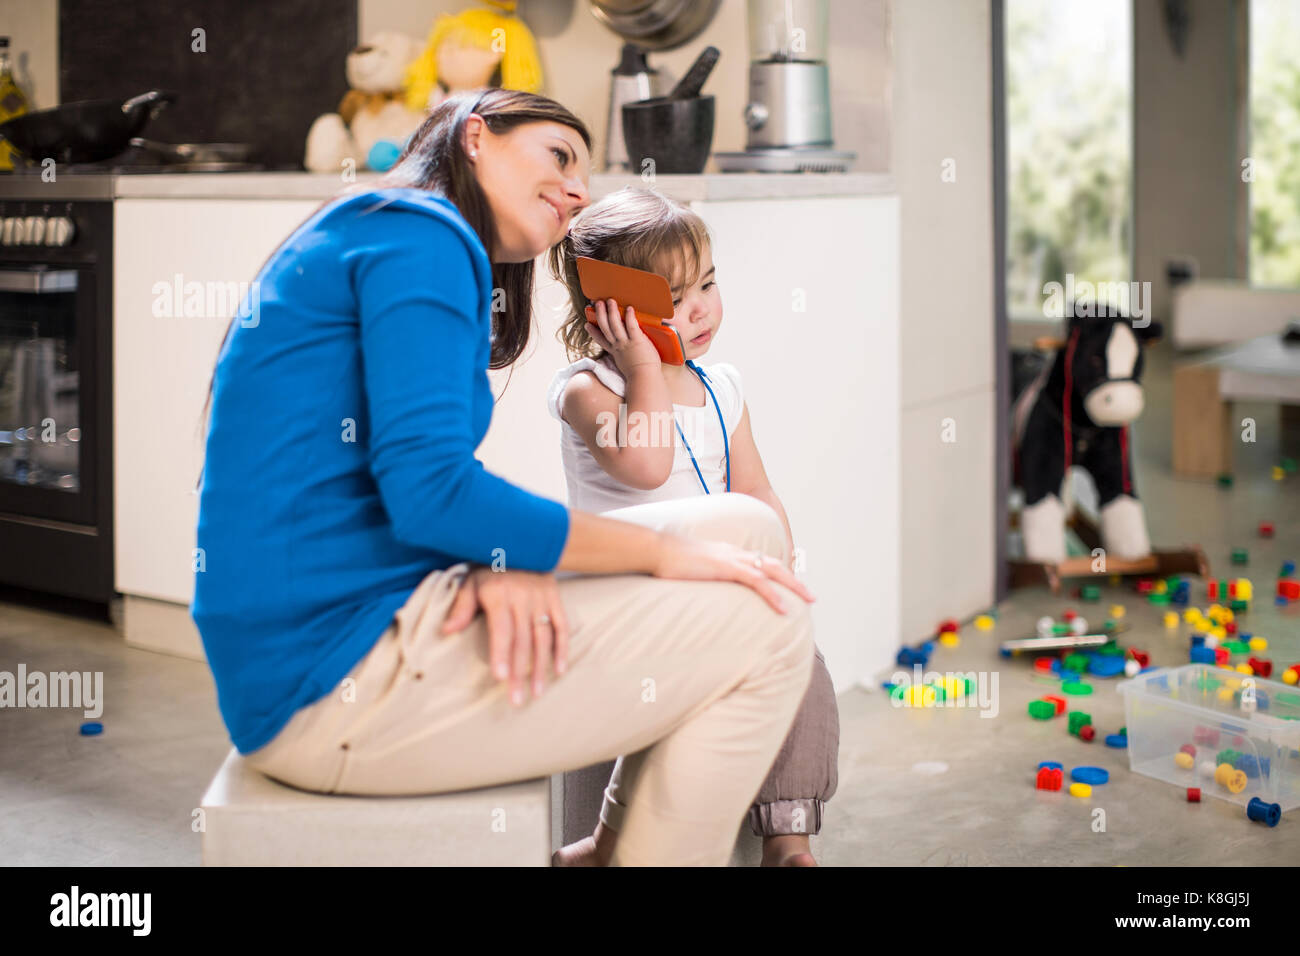 Mother listening in on baby girl's telephone call - Stock Image